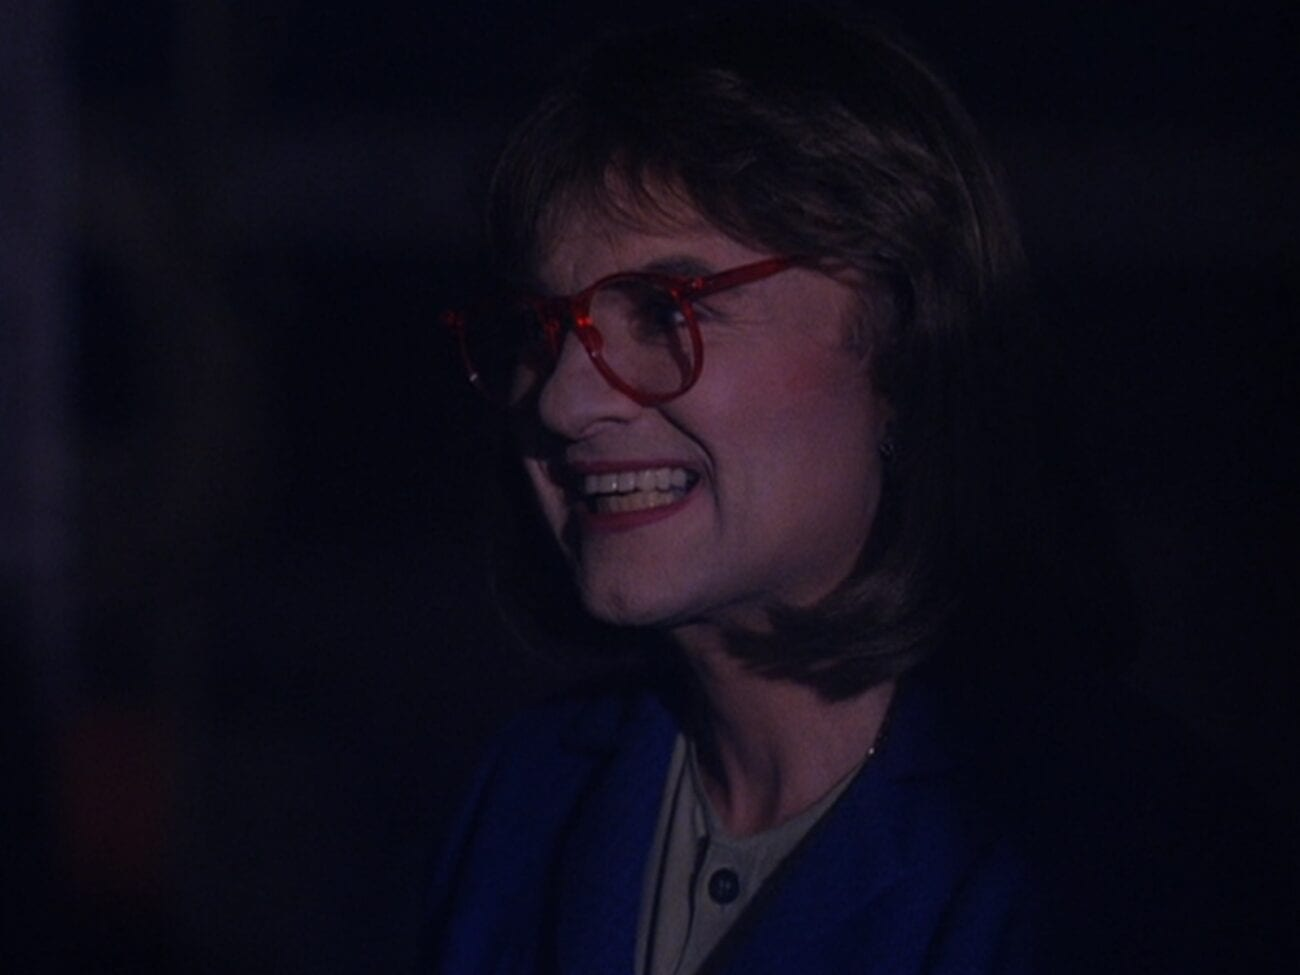 Windom Earle dressed as the Log Lady with a creepy grin on his face